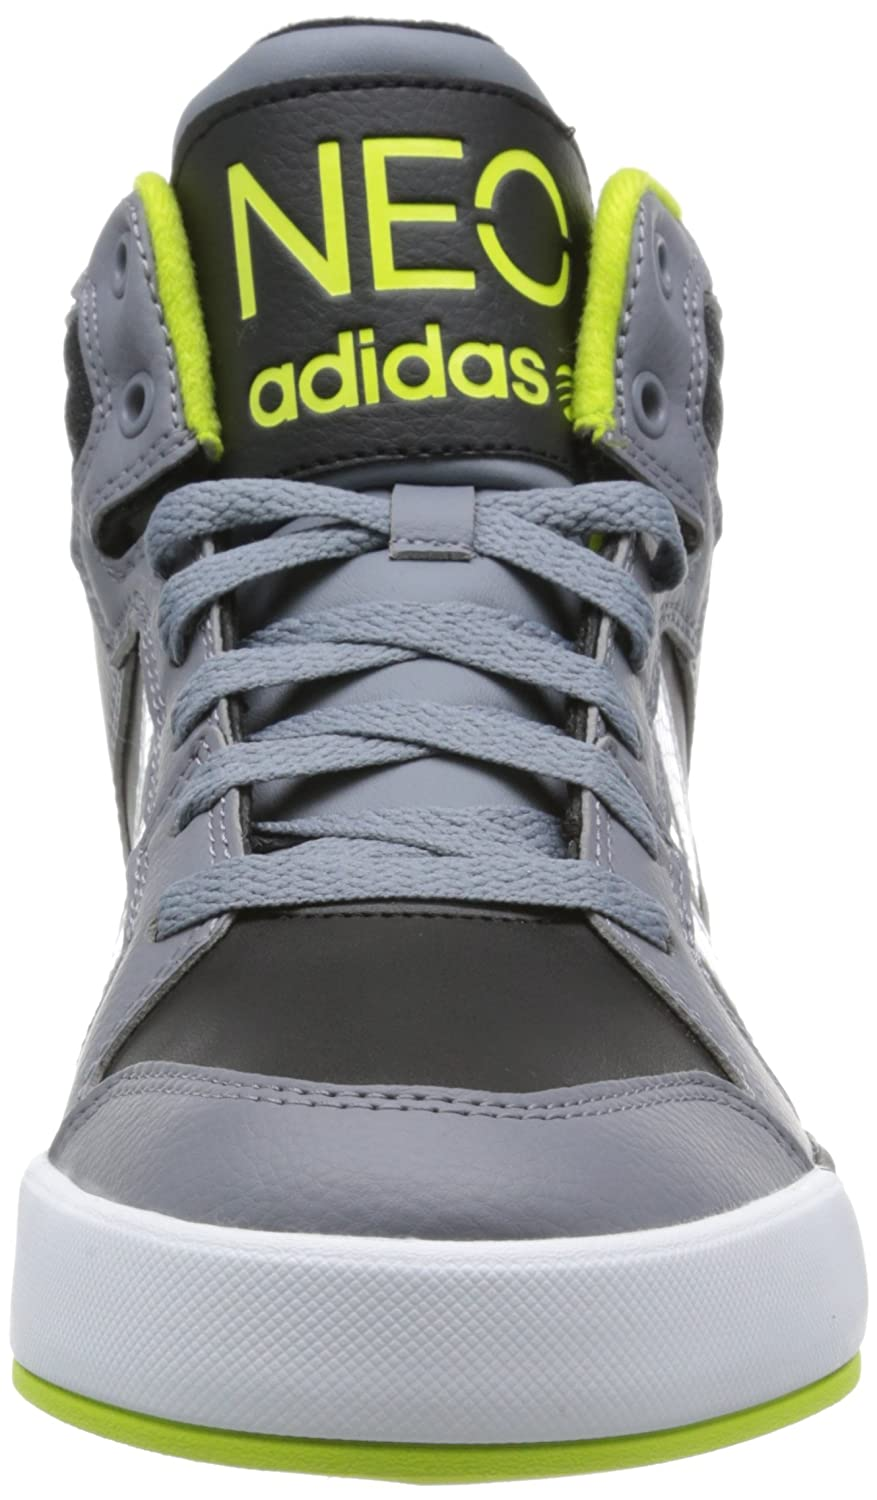 adidas neo trainers grey